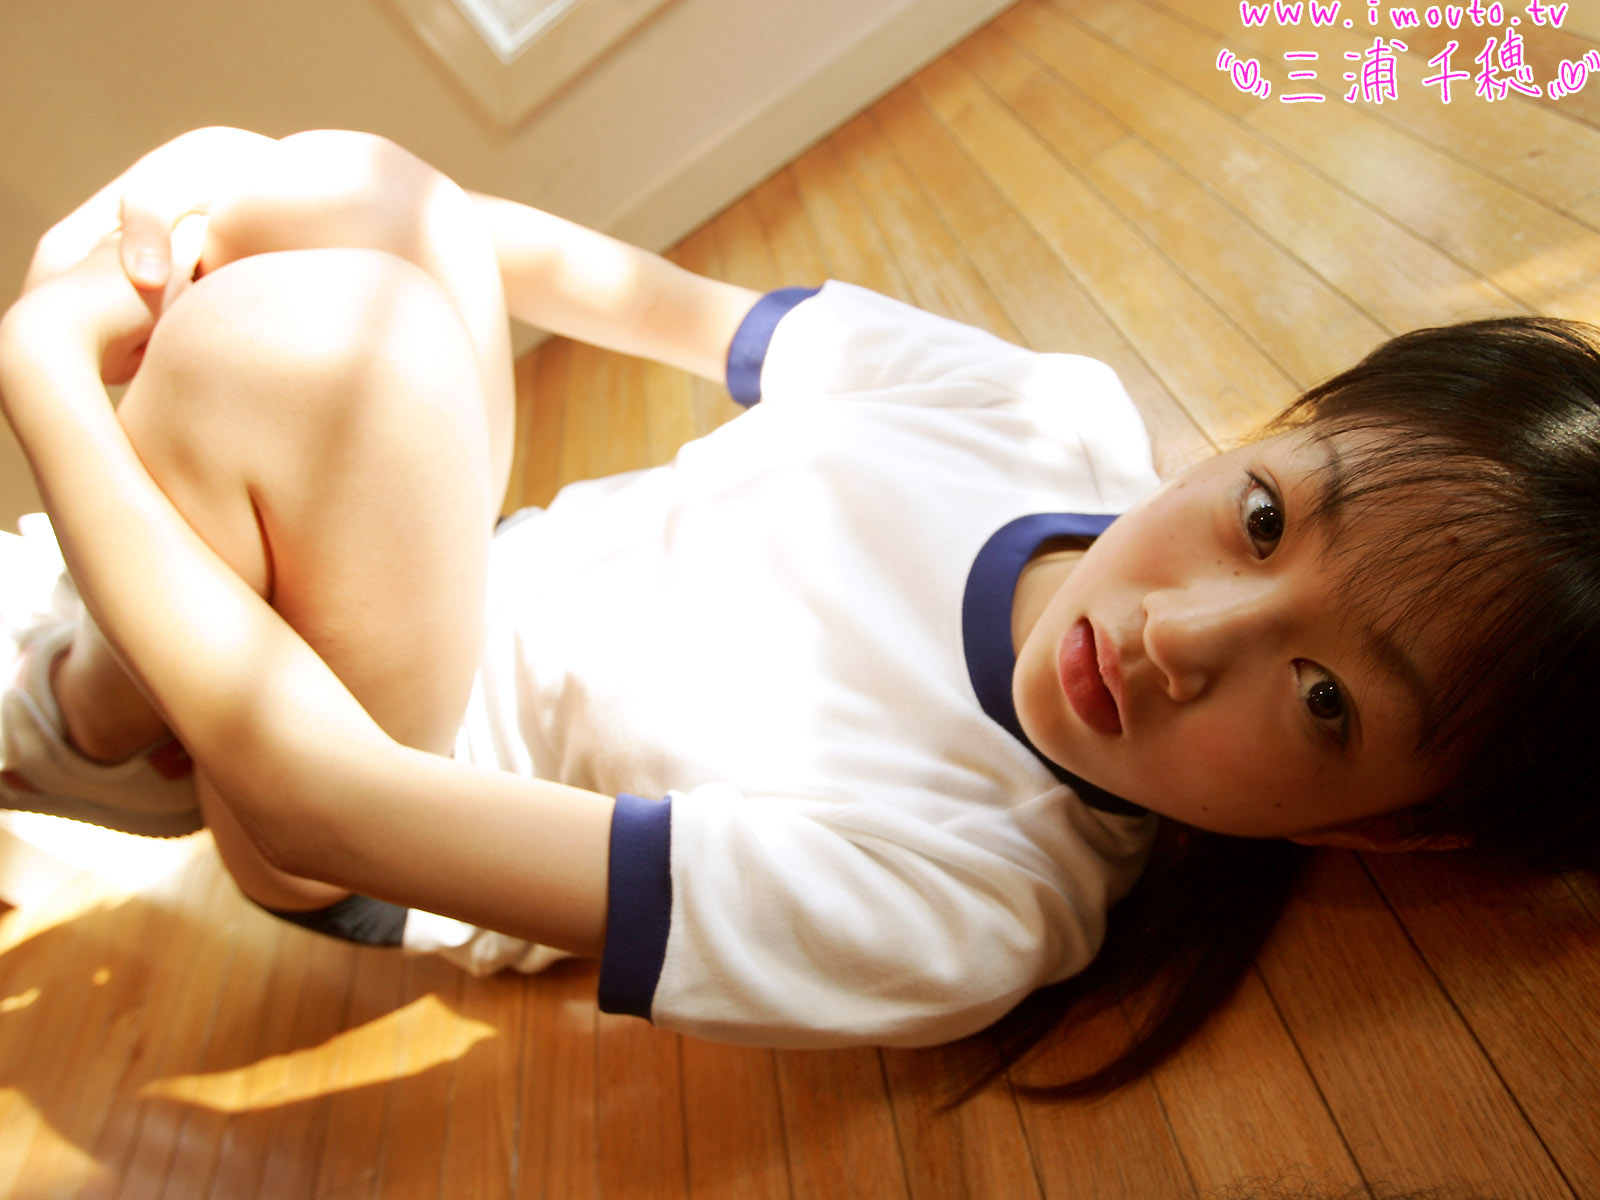 Imouto TV Idol U15 http://kootation.com/junior-idol-japanese-imouto-tv-young-and-model-gallery.html